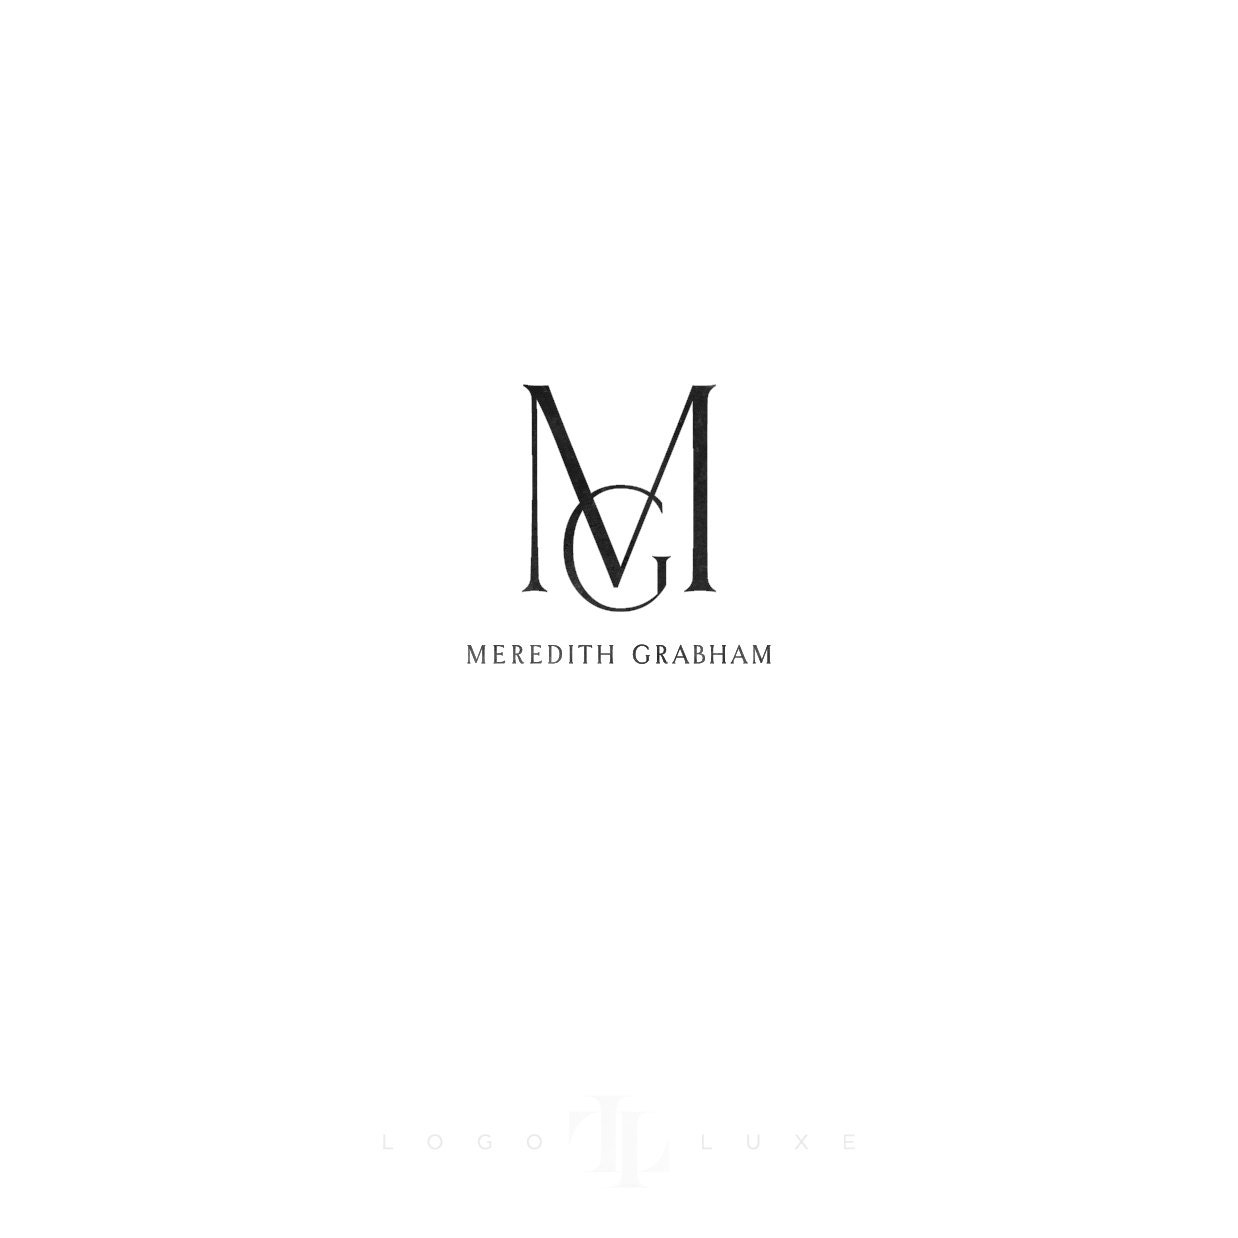 Custom logo design logo luxe custom business logo logo for Interior designs logos